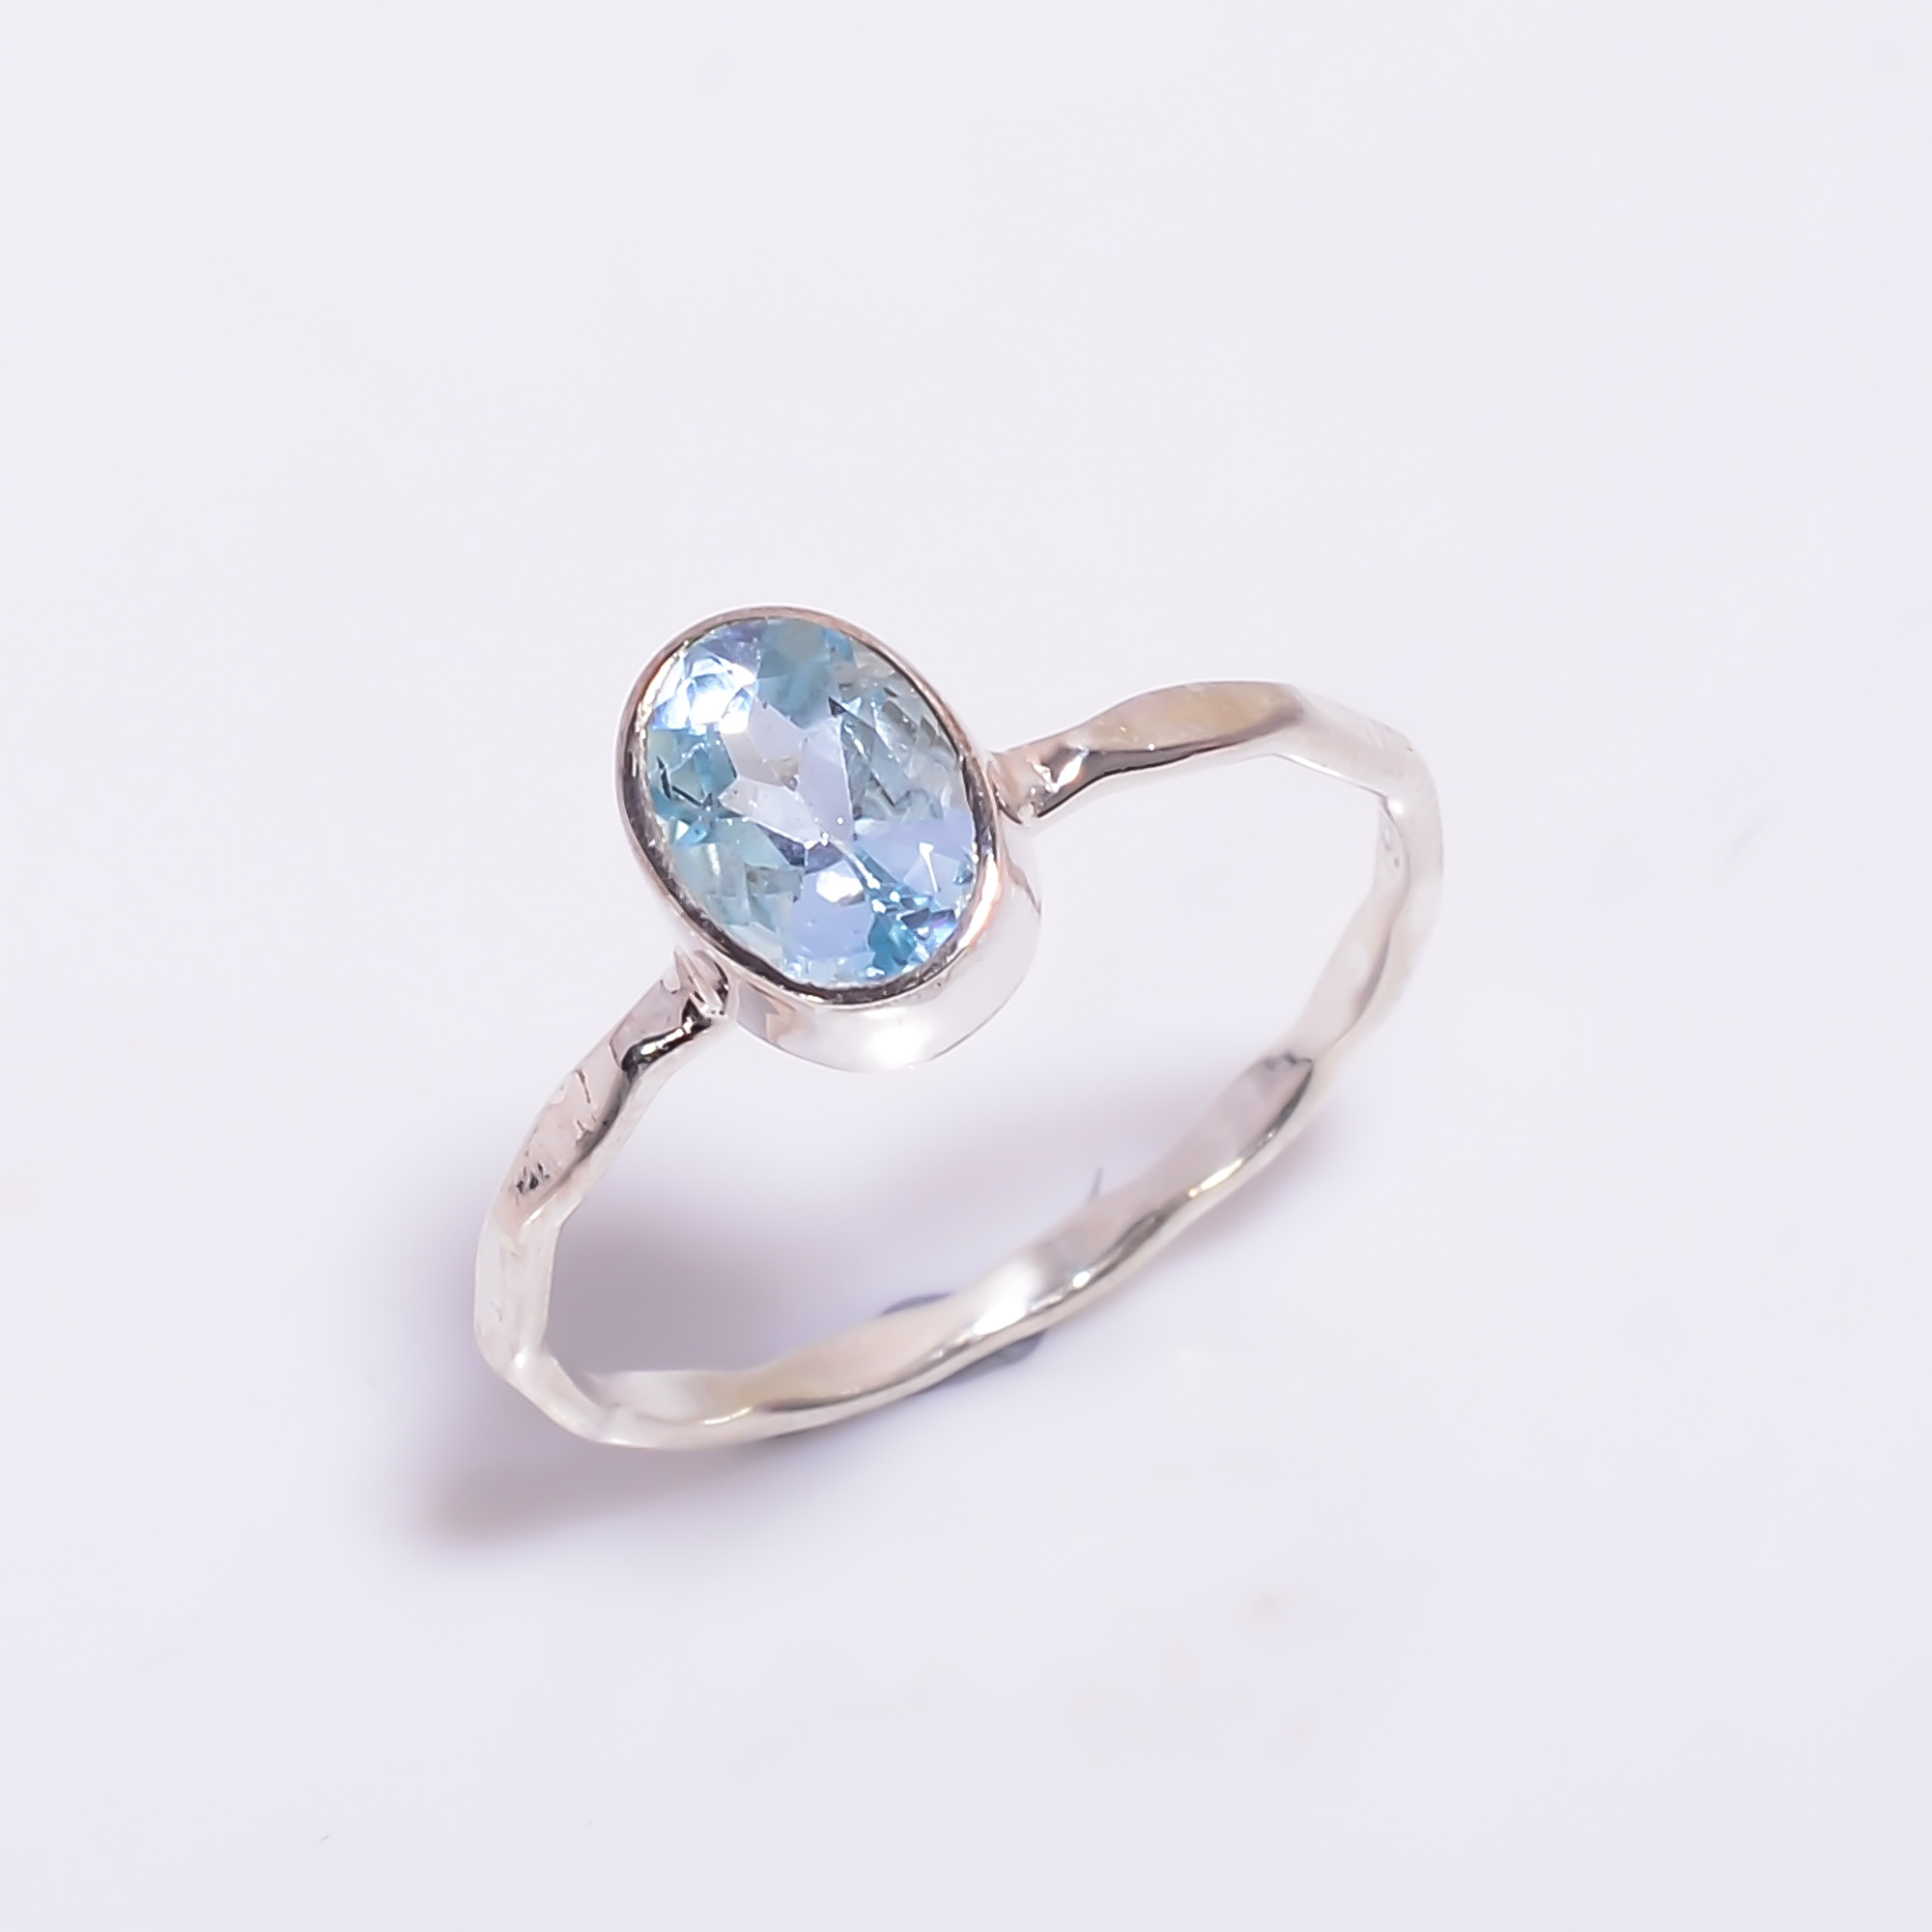 Aquamarine Gemstone 925 Sterling Silver Hammered Stackable Ring